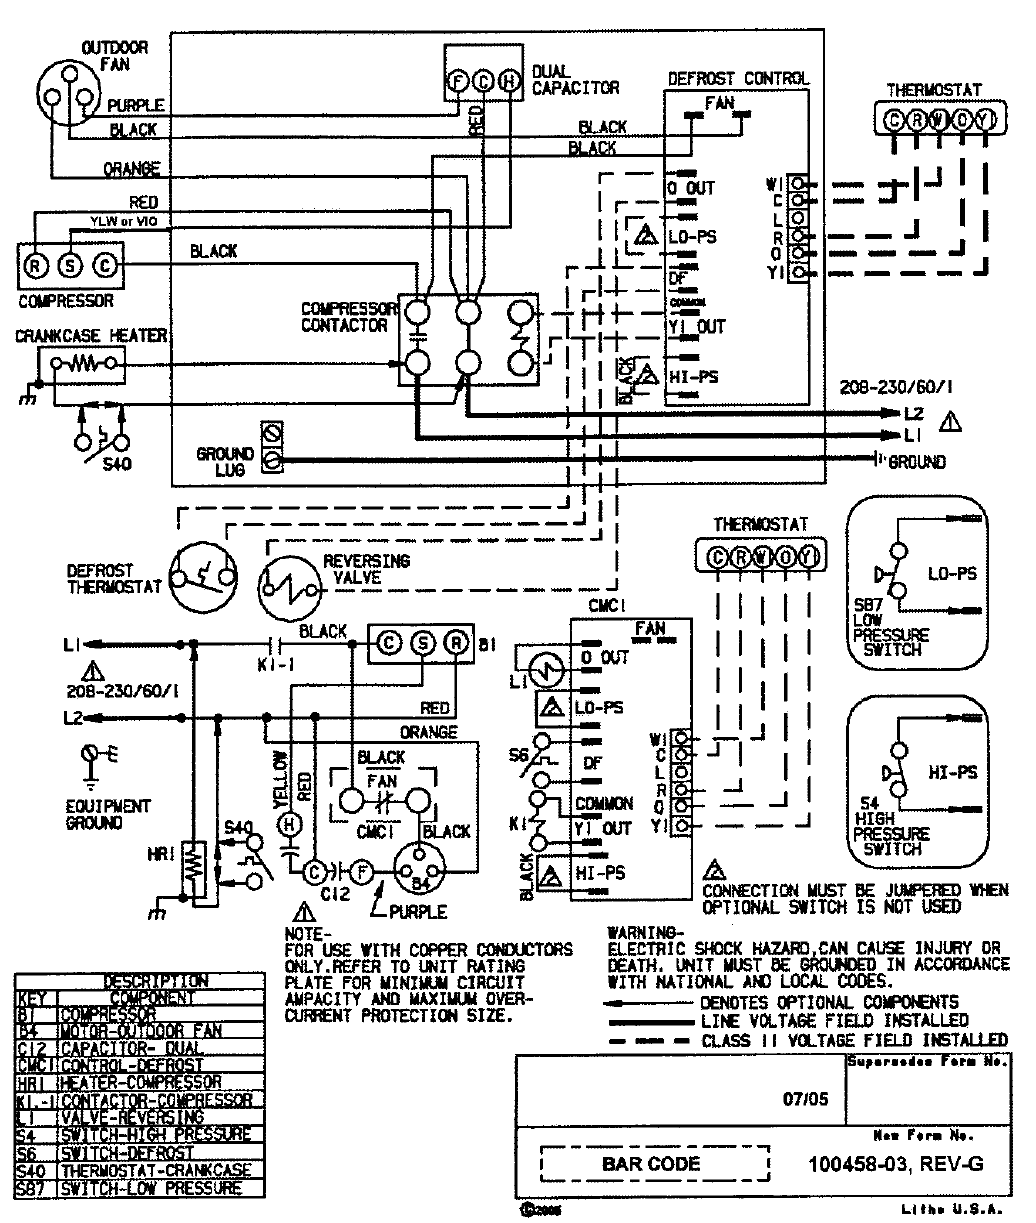 66a1938d e87a 8684 cde2 d0cfcc8a31fc bg9 page 9 of ducane (hvac) heat pump 2hp13 user guide manualsonline com Electric Motor Capacitor Wiring Diagram at reclaimingppi.co